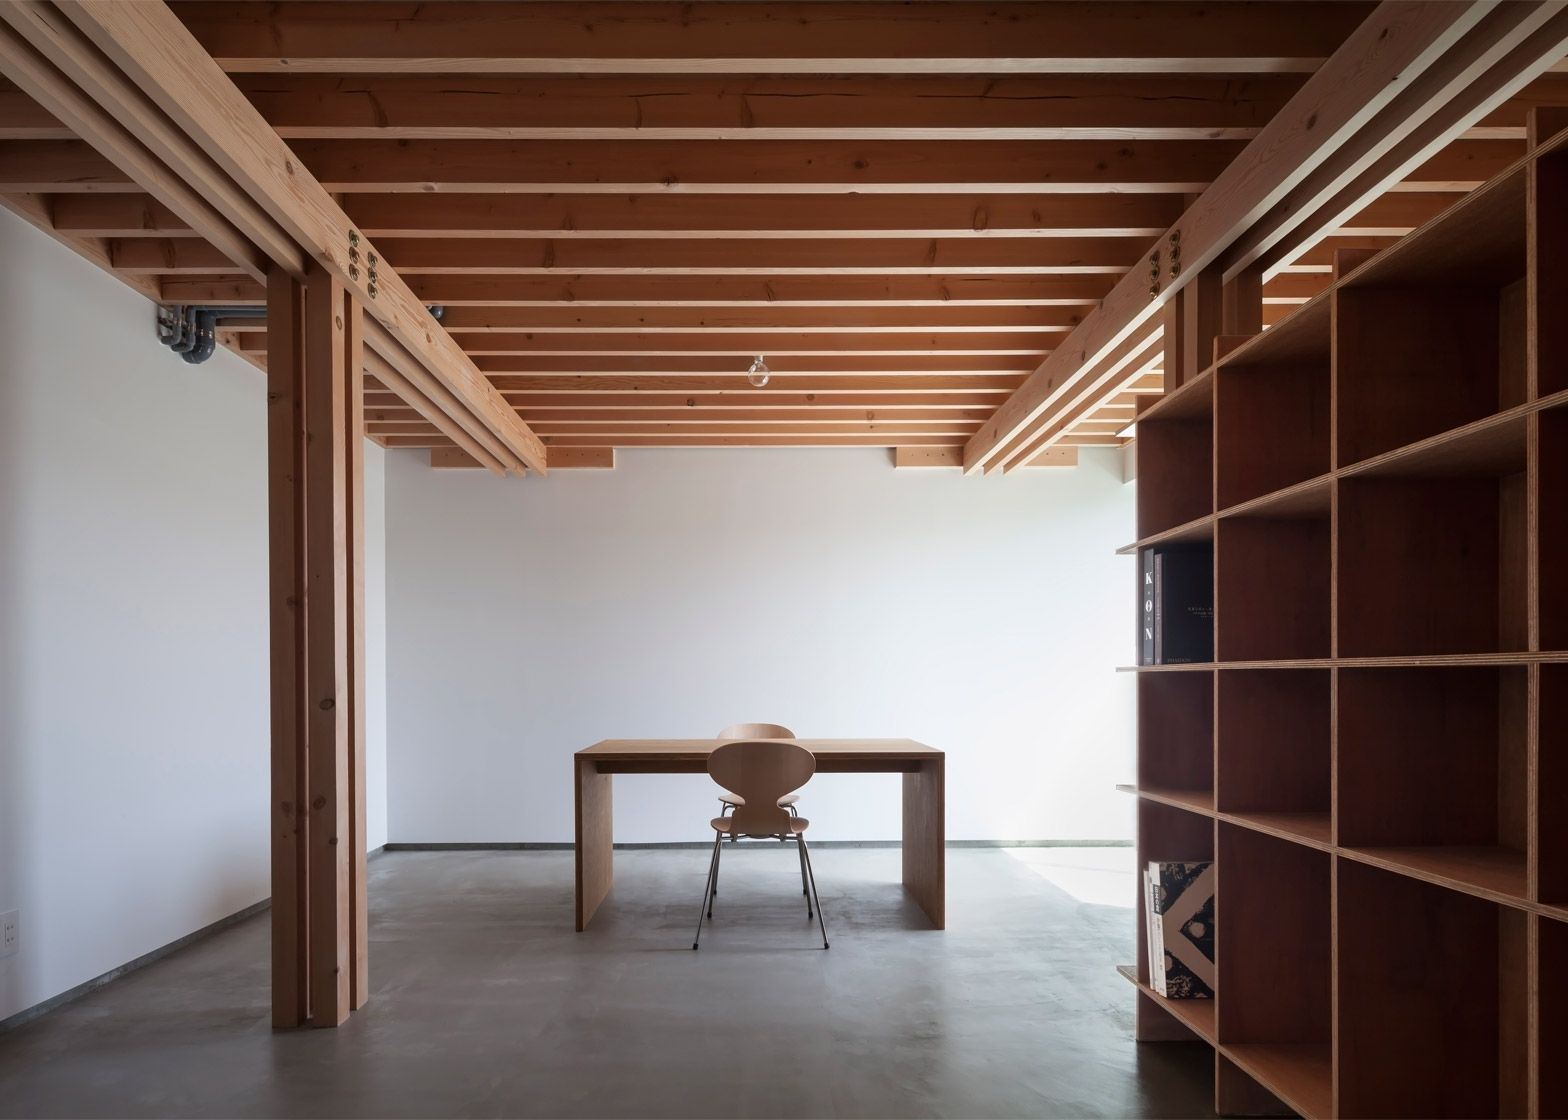 FT Architects\' 4 Columns house features a timber frame | ART ...